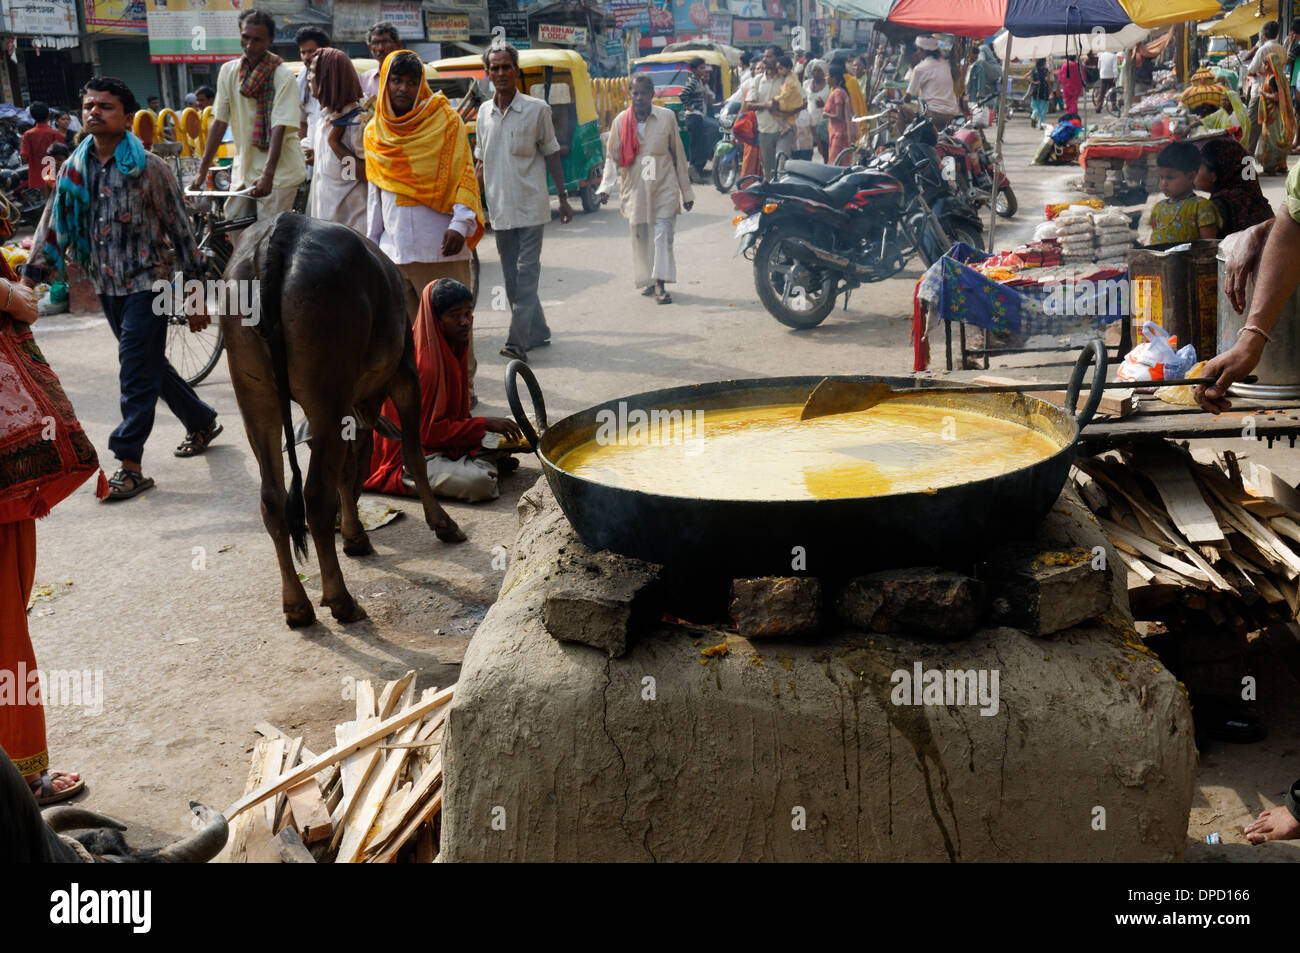 Street food in India - Stock Image